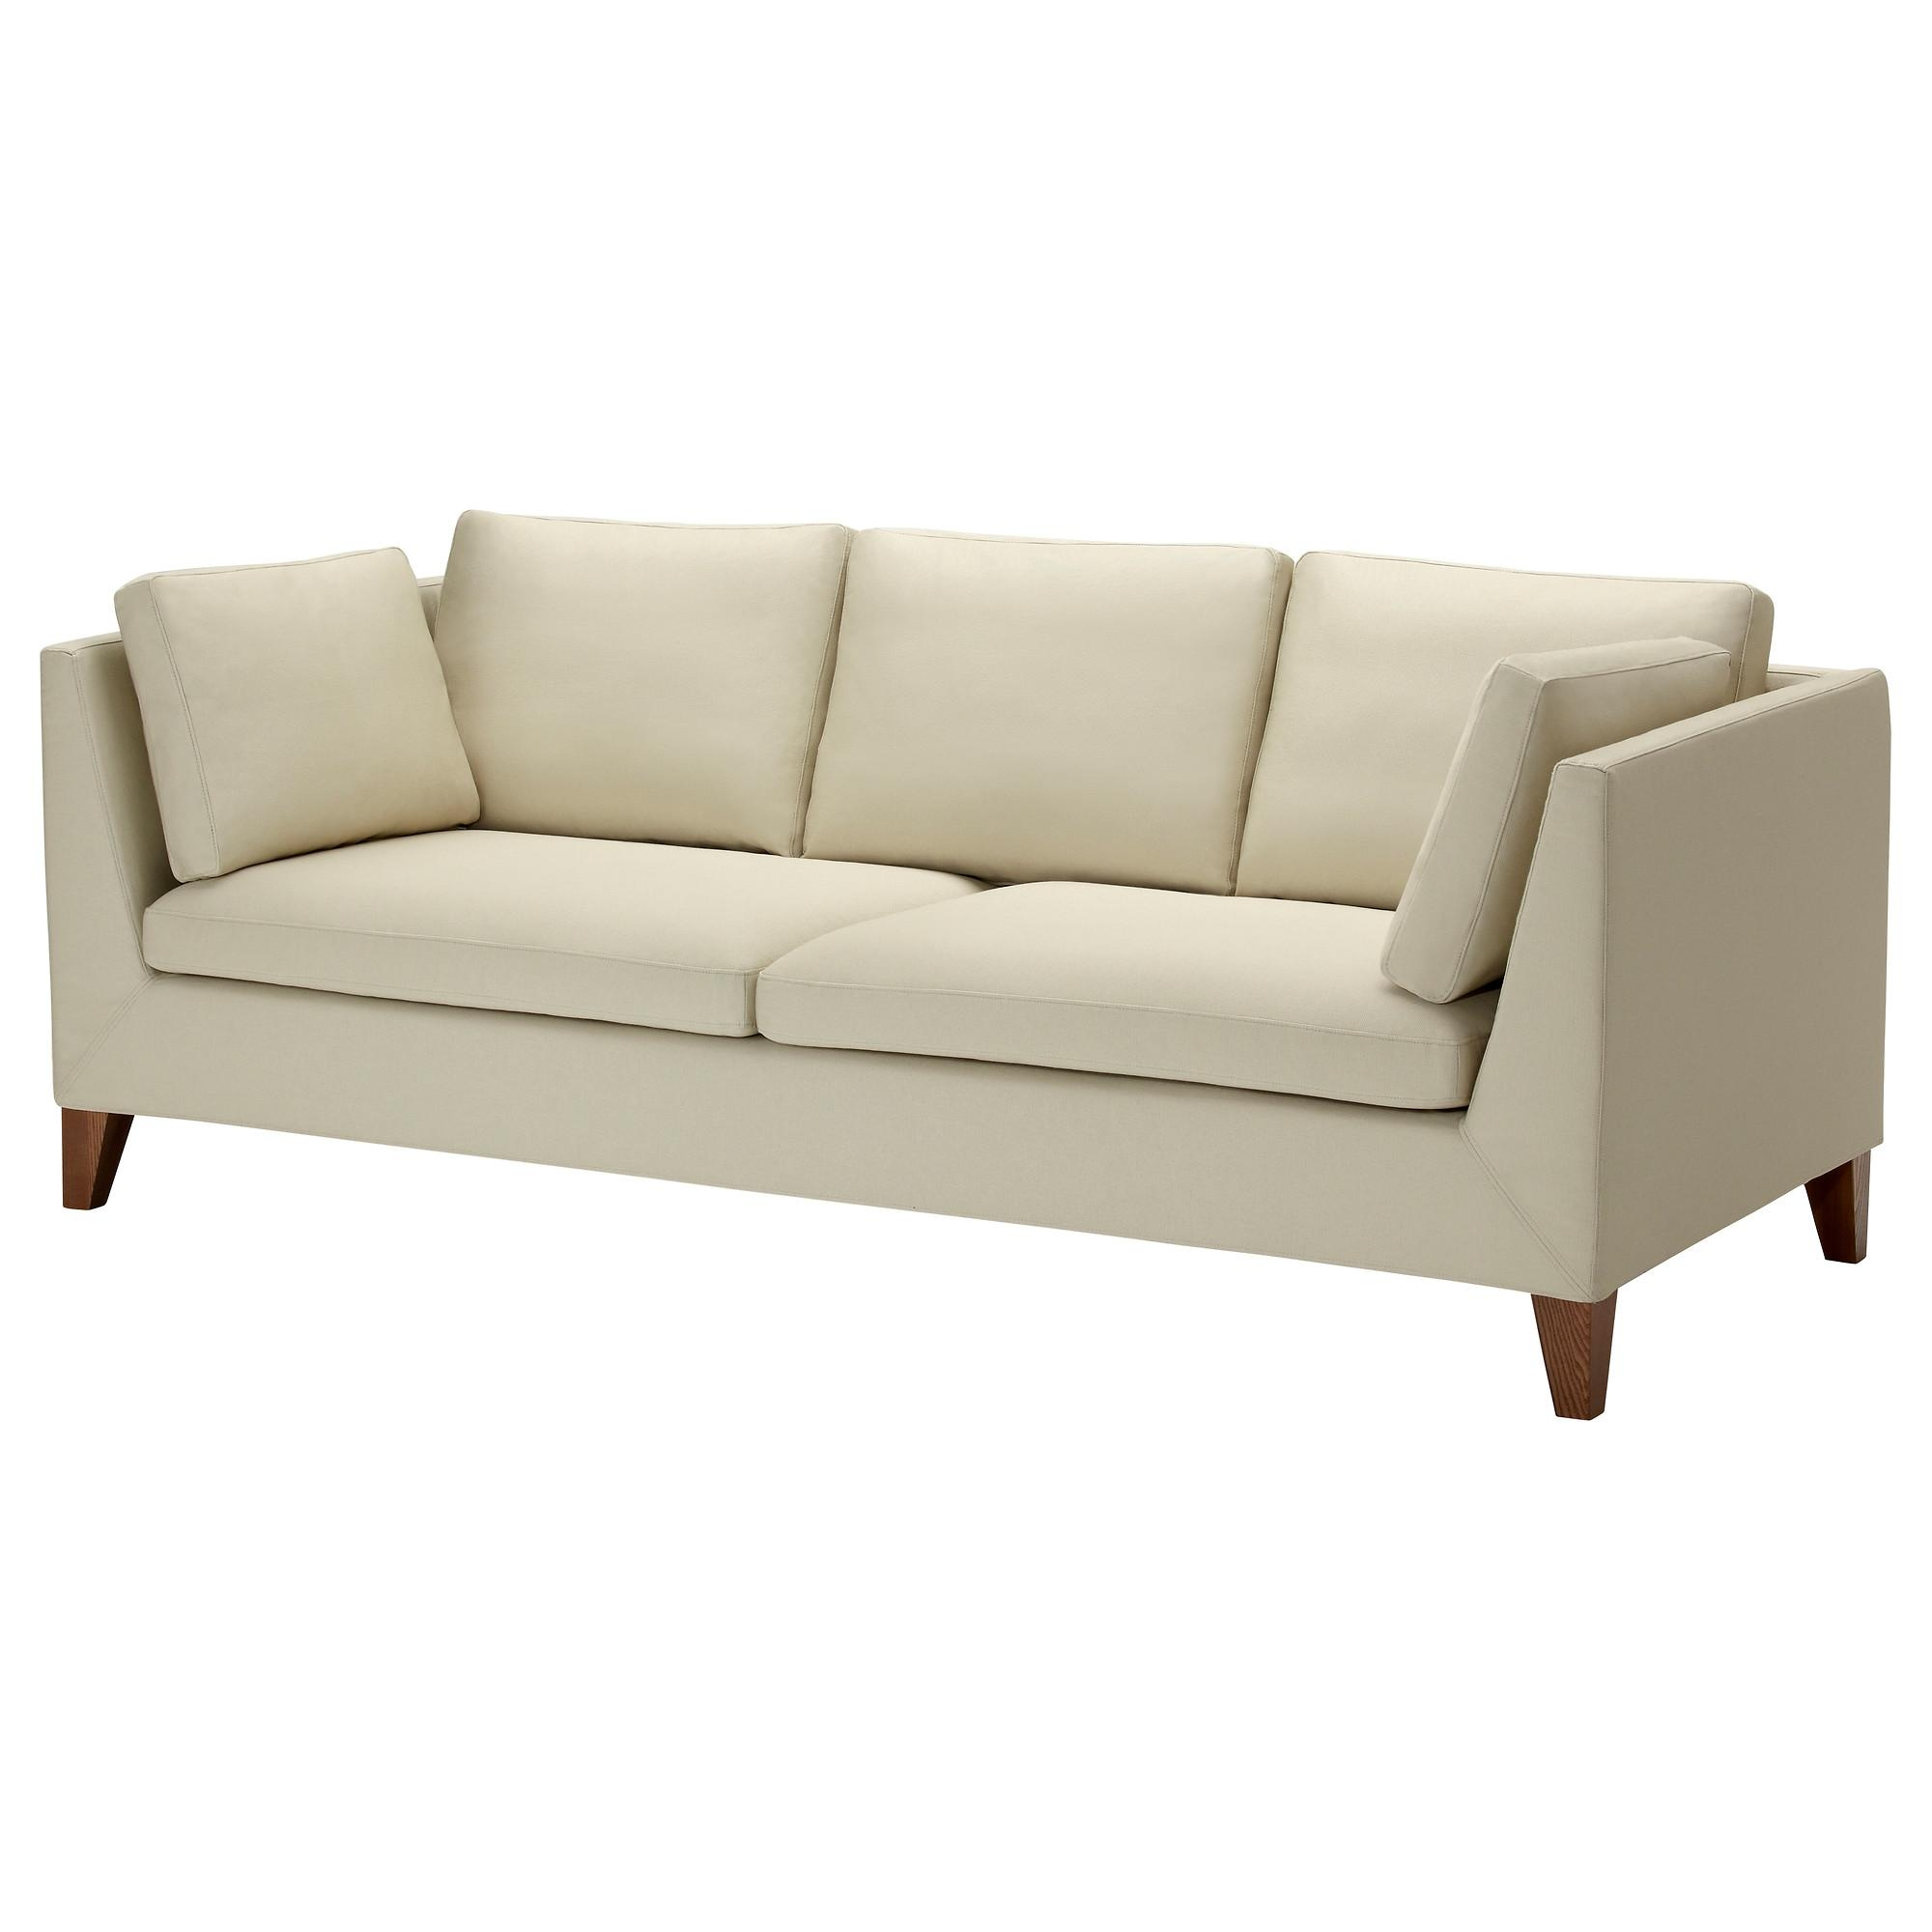 Narrow Depth Sofas Gracie Sofa Shallow With Back In